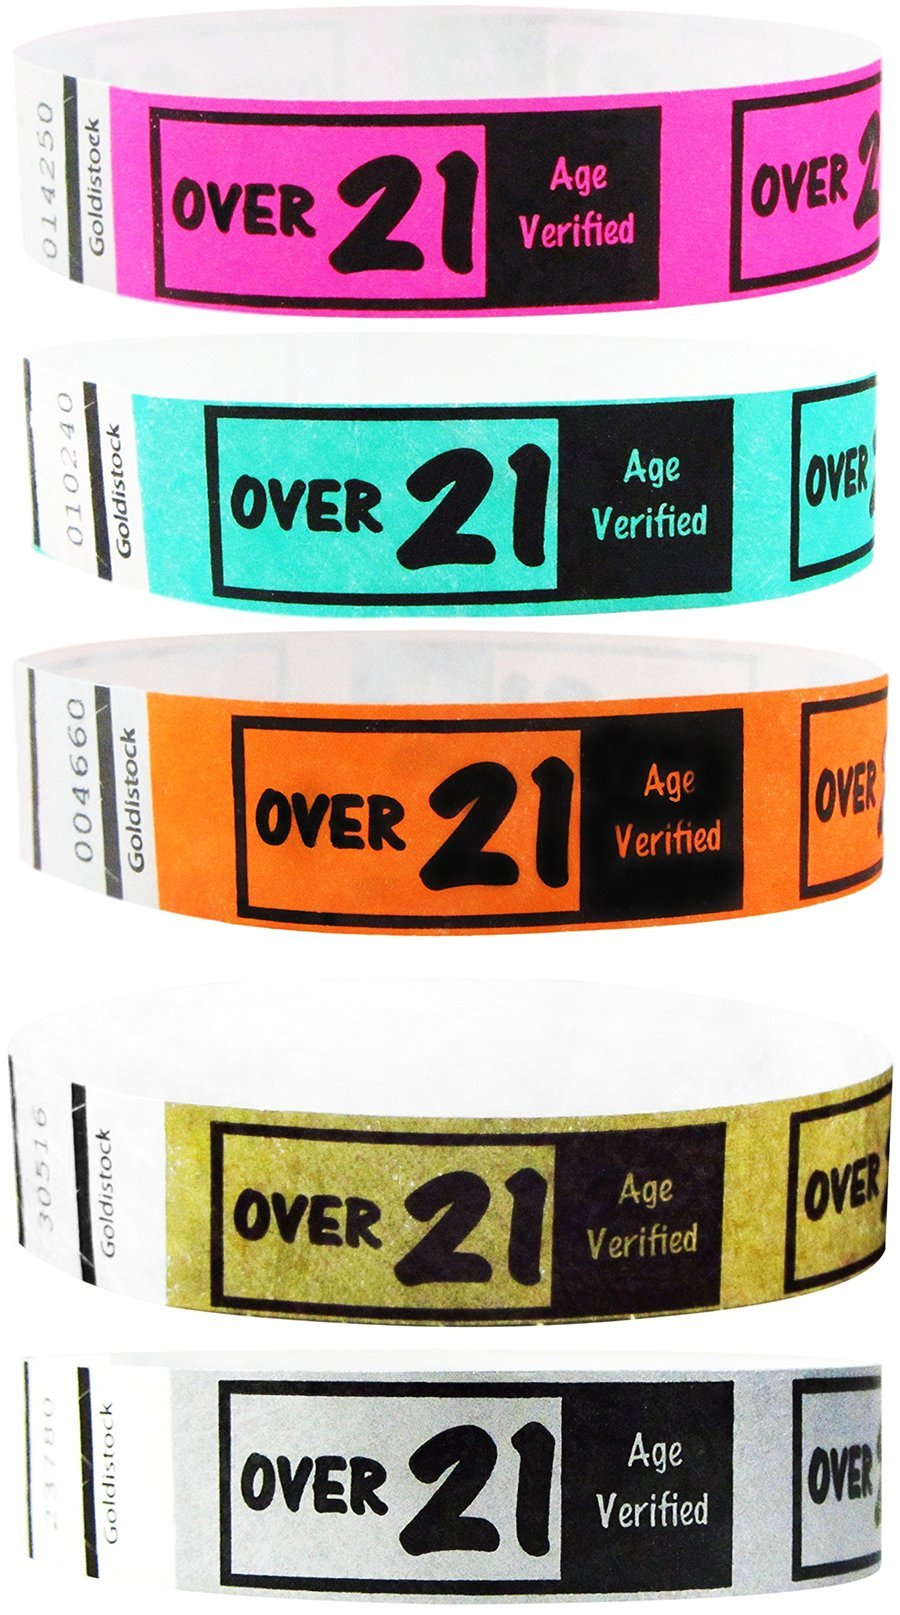 "Goldistock 3/4"" Tyvek Wristbands Over 21 - 500 Ct. Variety Pack - (100/Color) - Metallic Gold, Metallic Silver , Neon Pink, Neon Aqua , Neon Orange - Easy Drinking Age Identification"